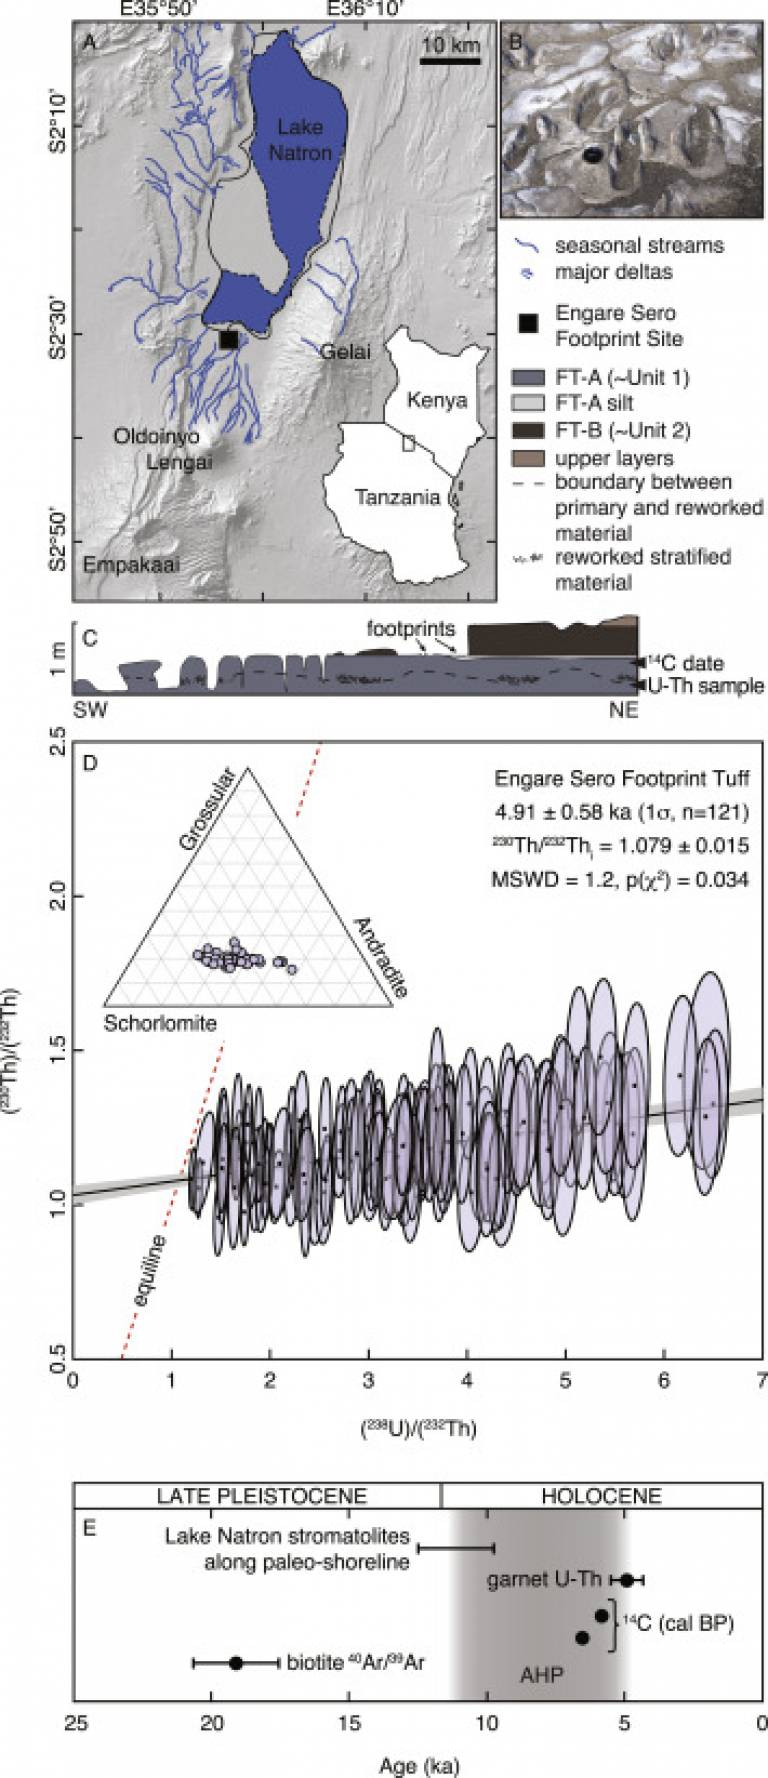 Geological and stratigraphic framework of the Engare Sero Footprint Tuff and U-Th isotope systematics of analysed garnets